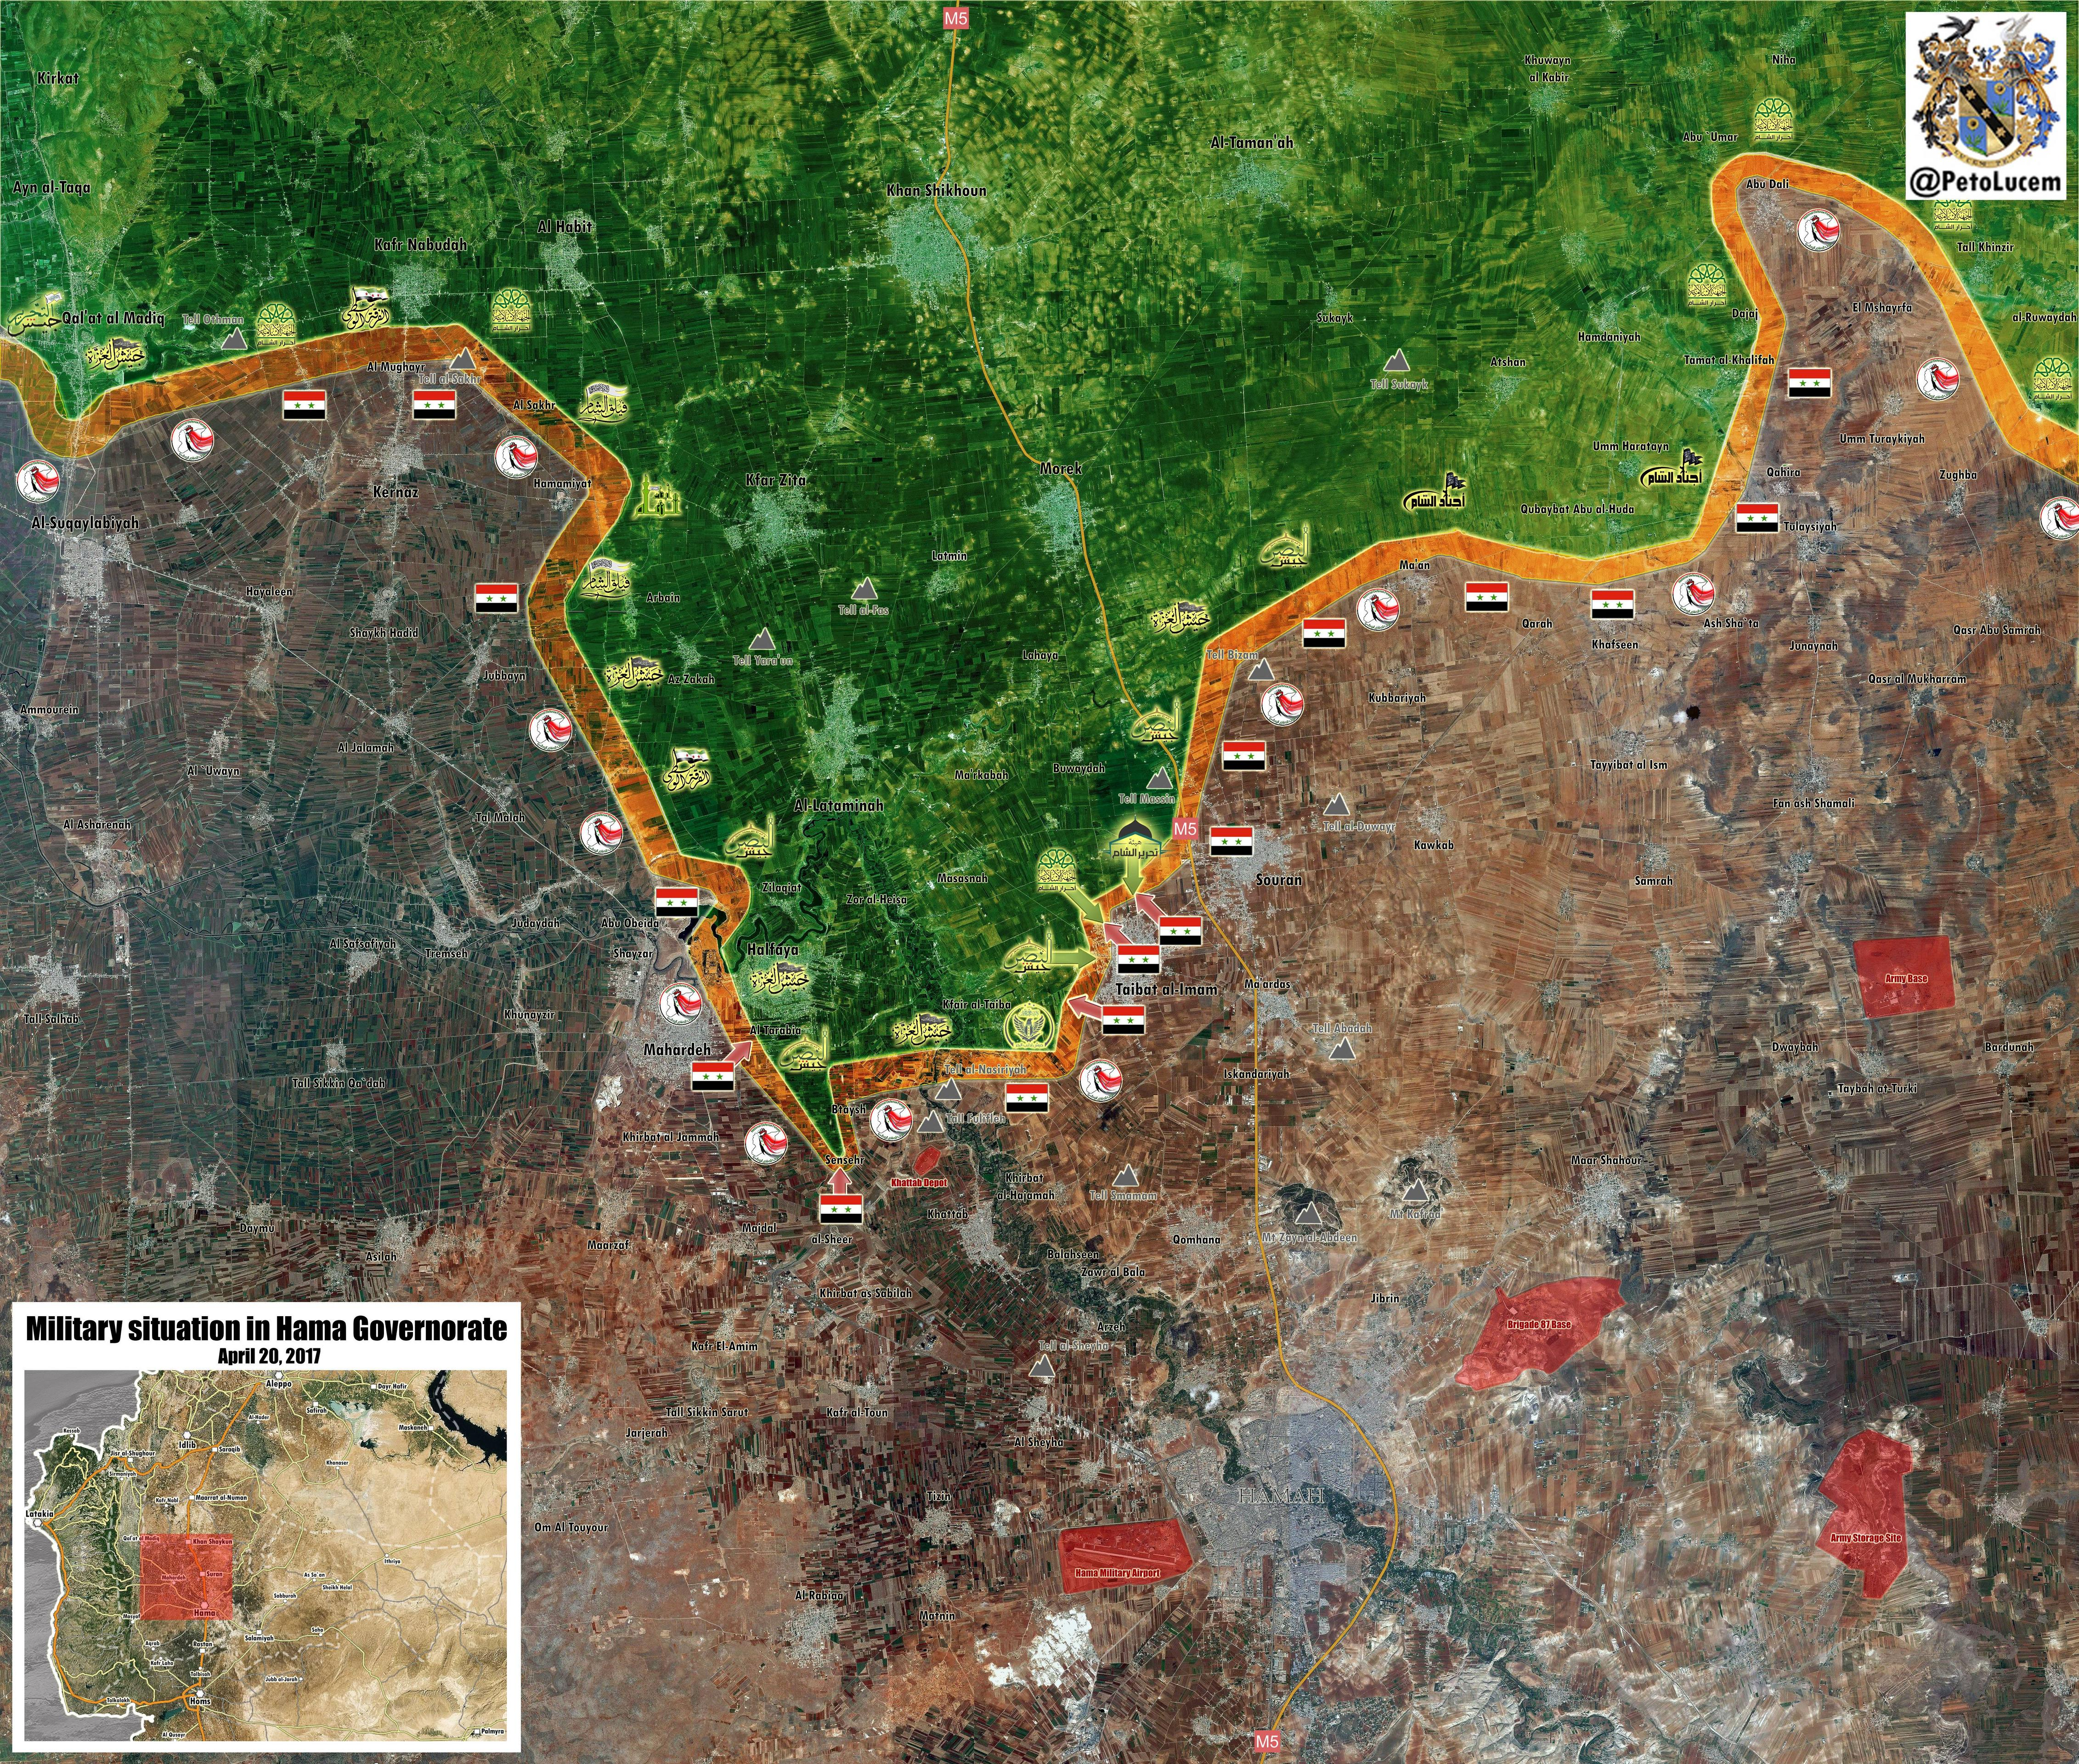 Syrian Army 5th Corps Open Headquarters In Hama Countryside, Prepare For Large-Scale Advance